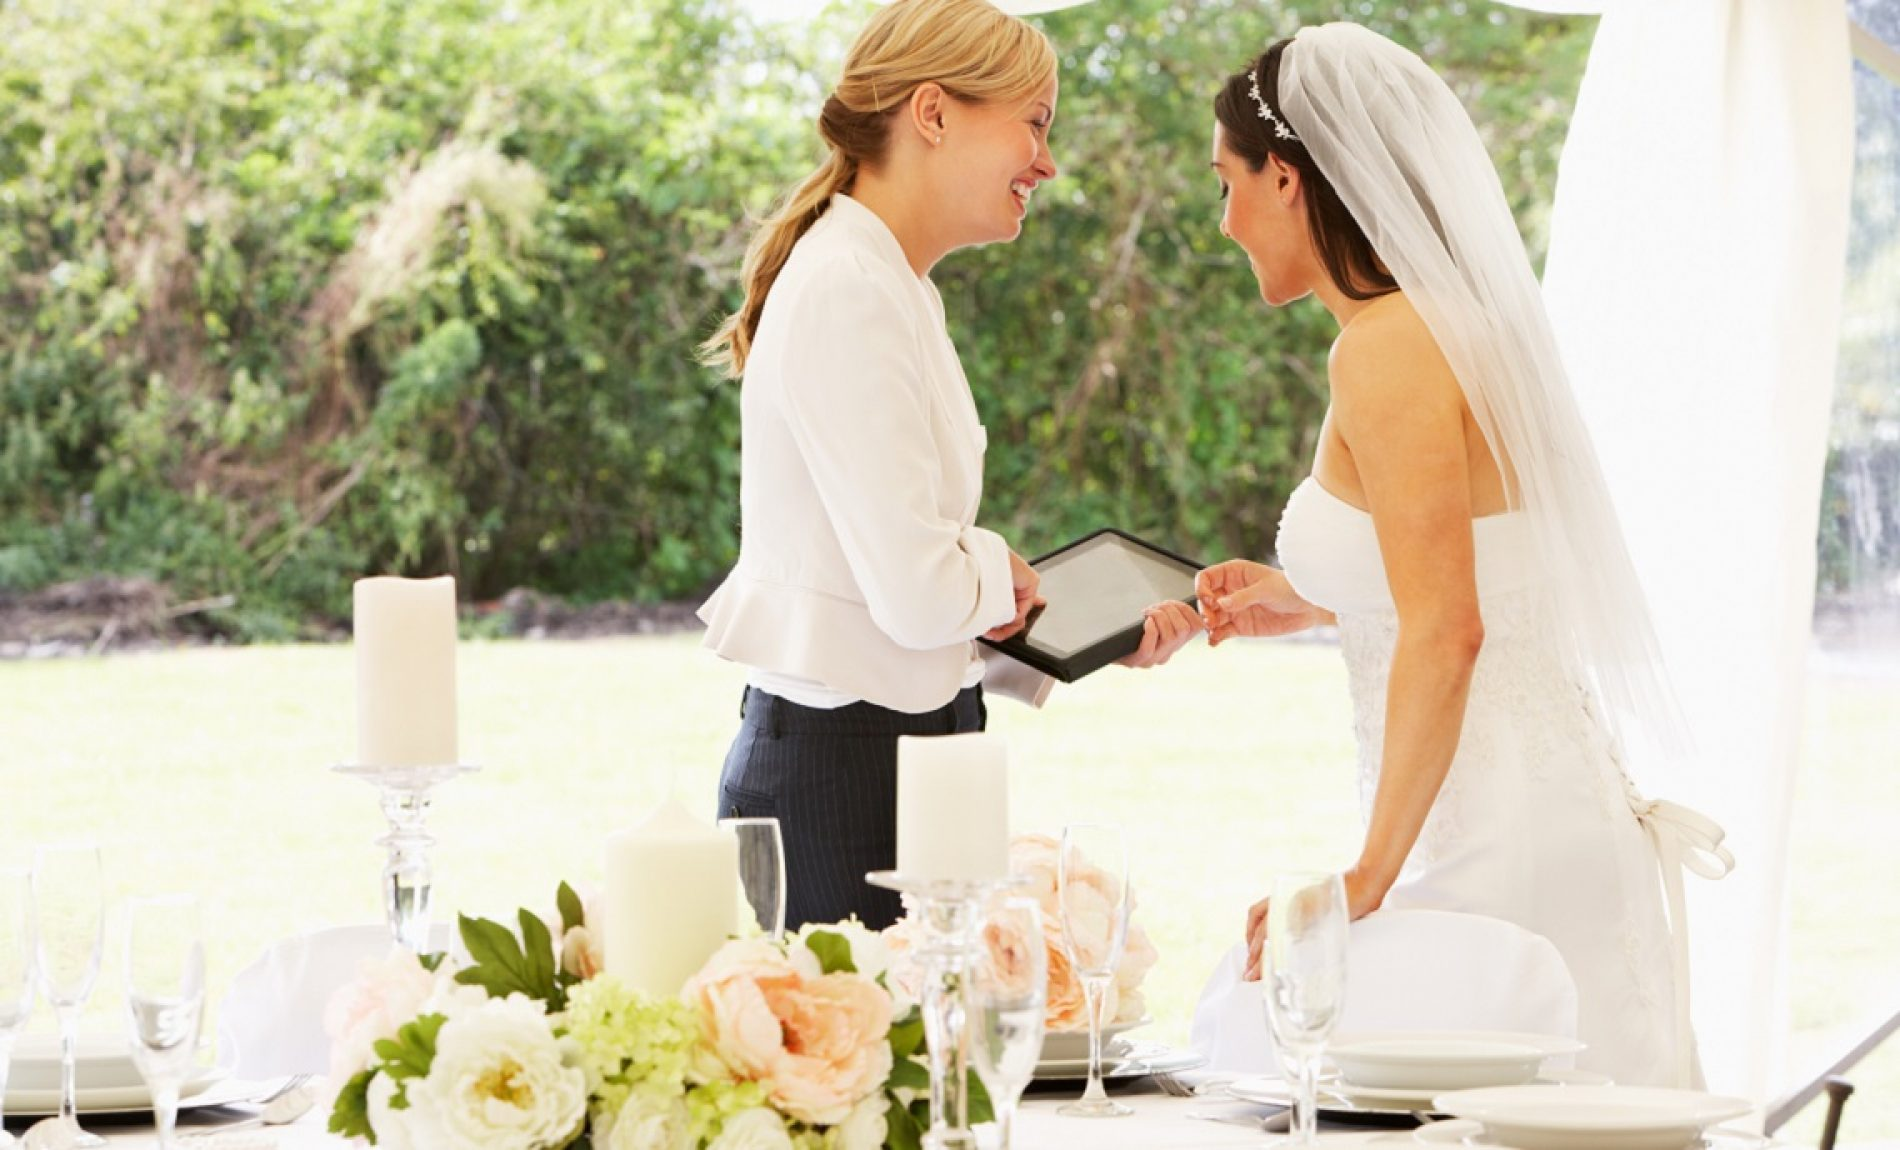 A cosa serve il wedding planner?